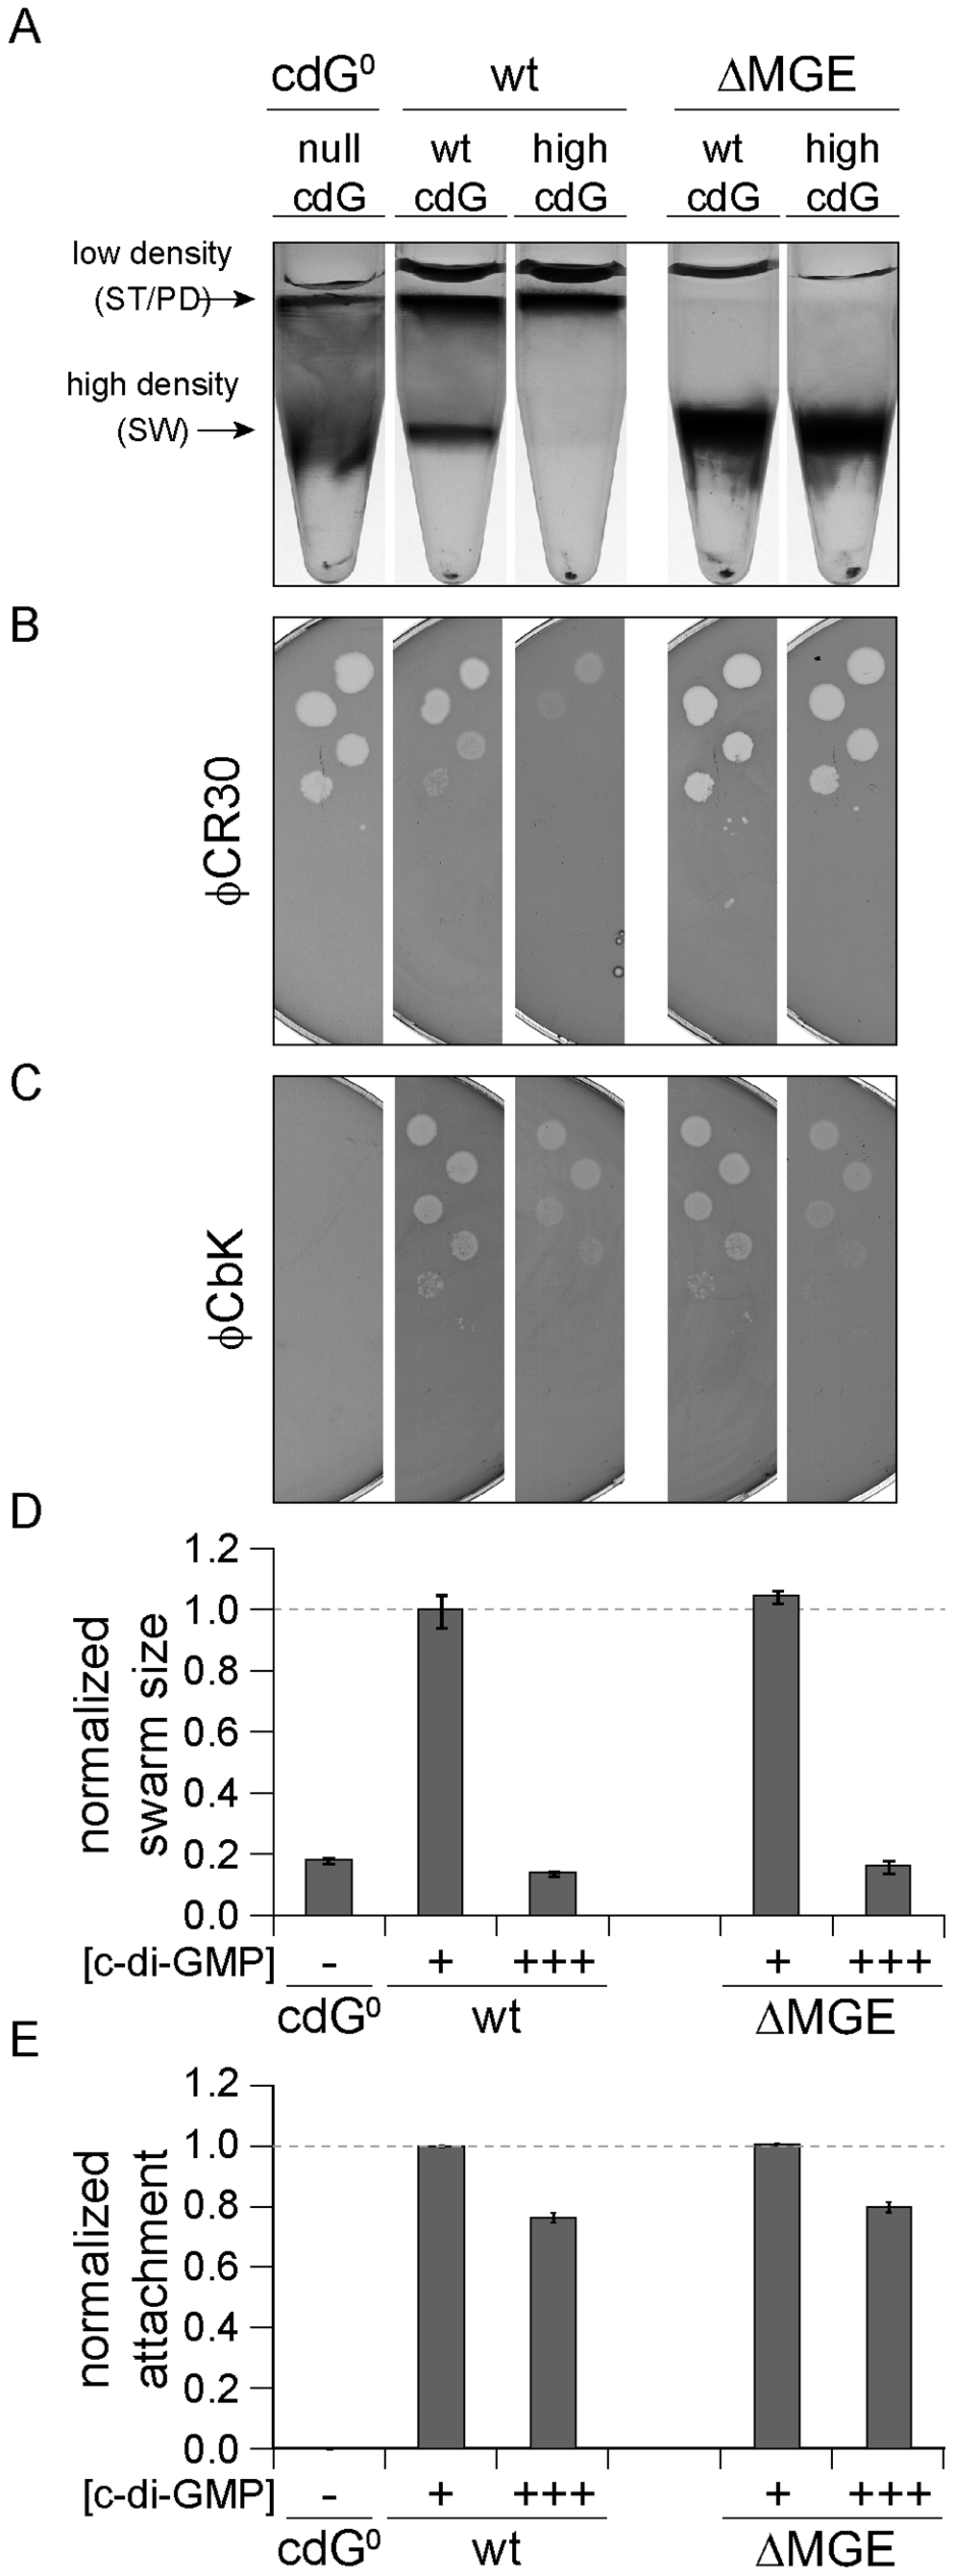 Cell density and φCR30 phage sensitivity are regulated by c-di-GMP via a mobile genetic element.